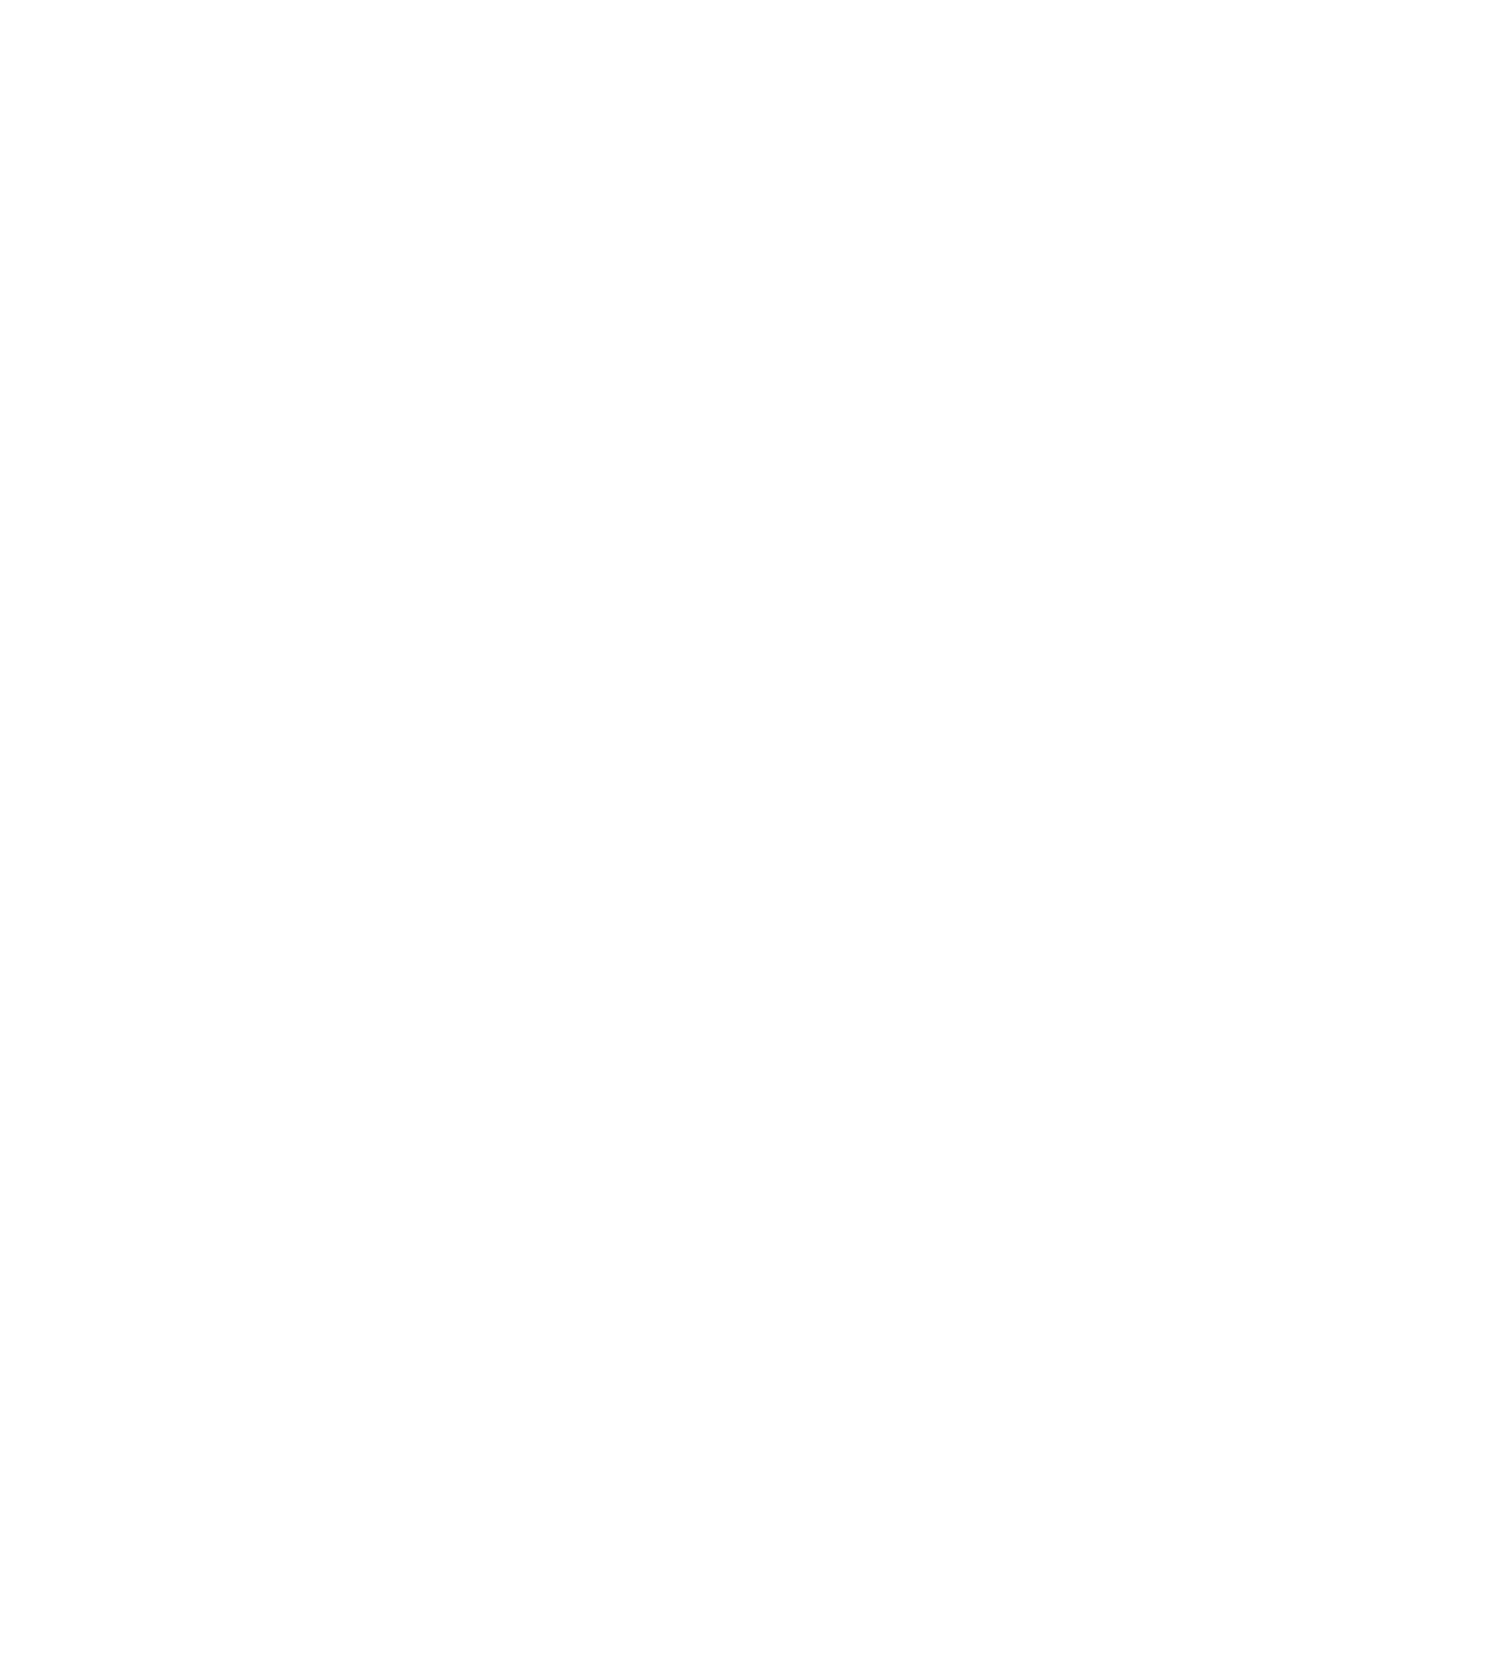 LIGHT RIDGE STUDIO